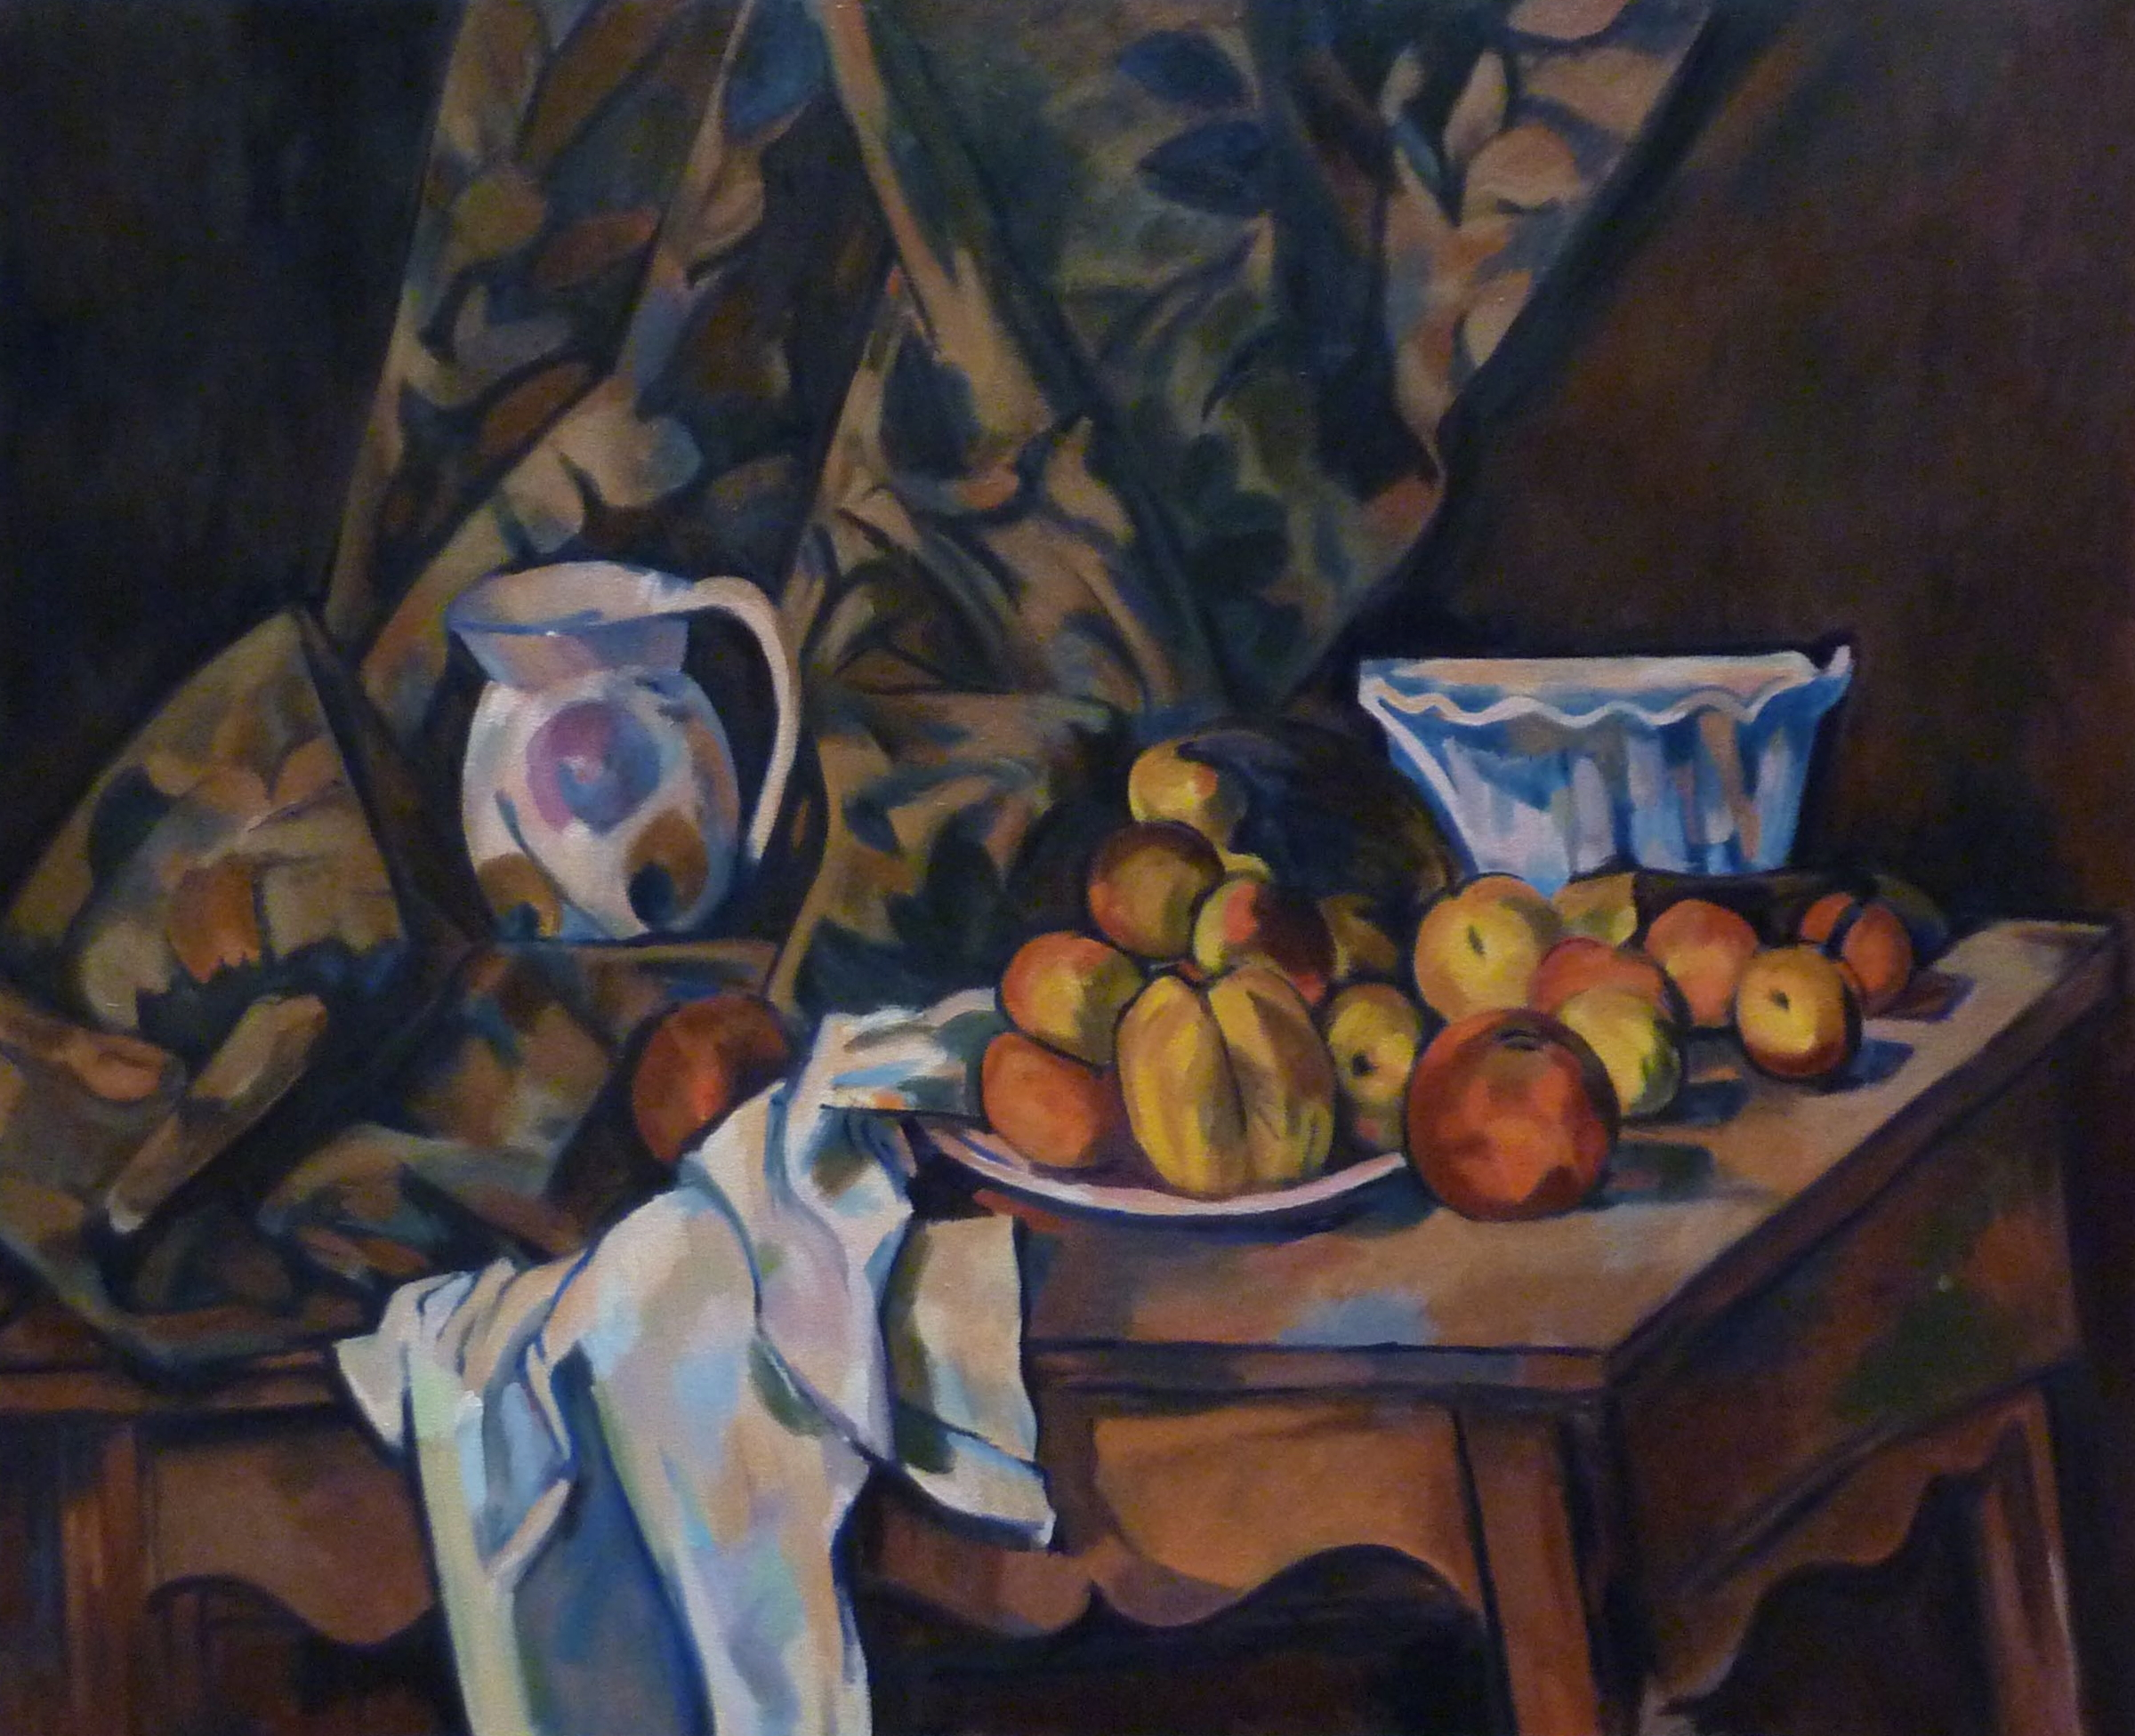 Copy after Paul Cézanne    Sill Life with Apples and Peaches